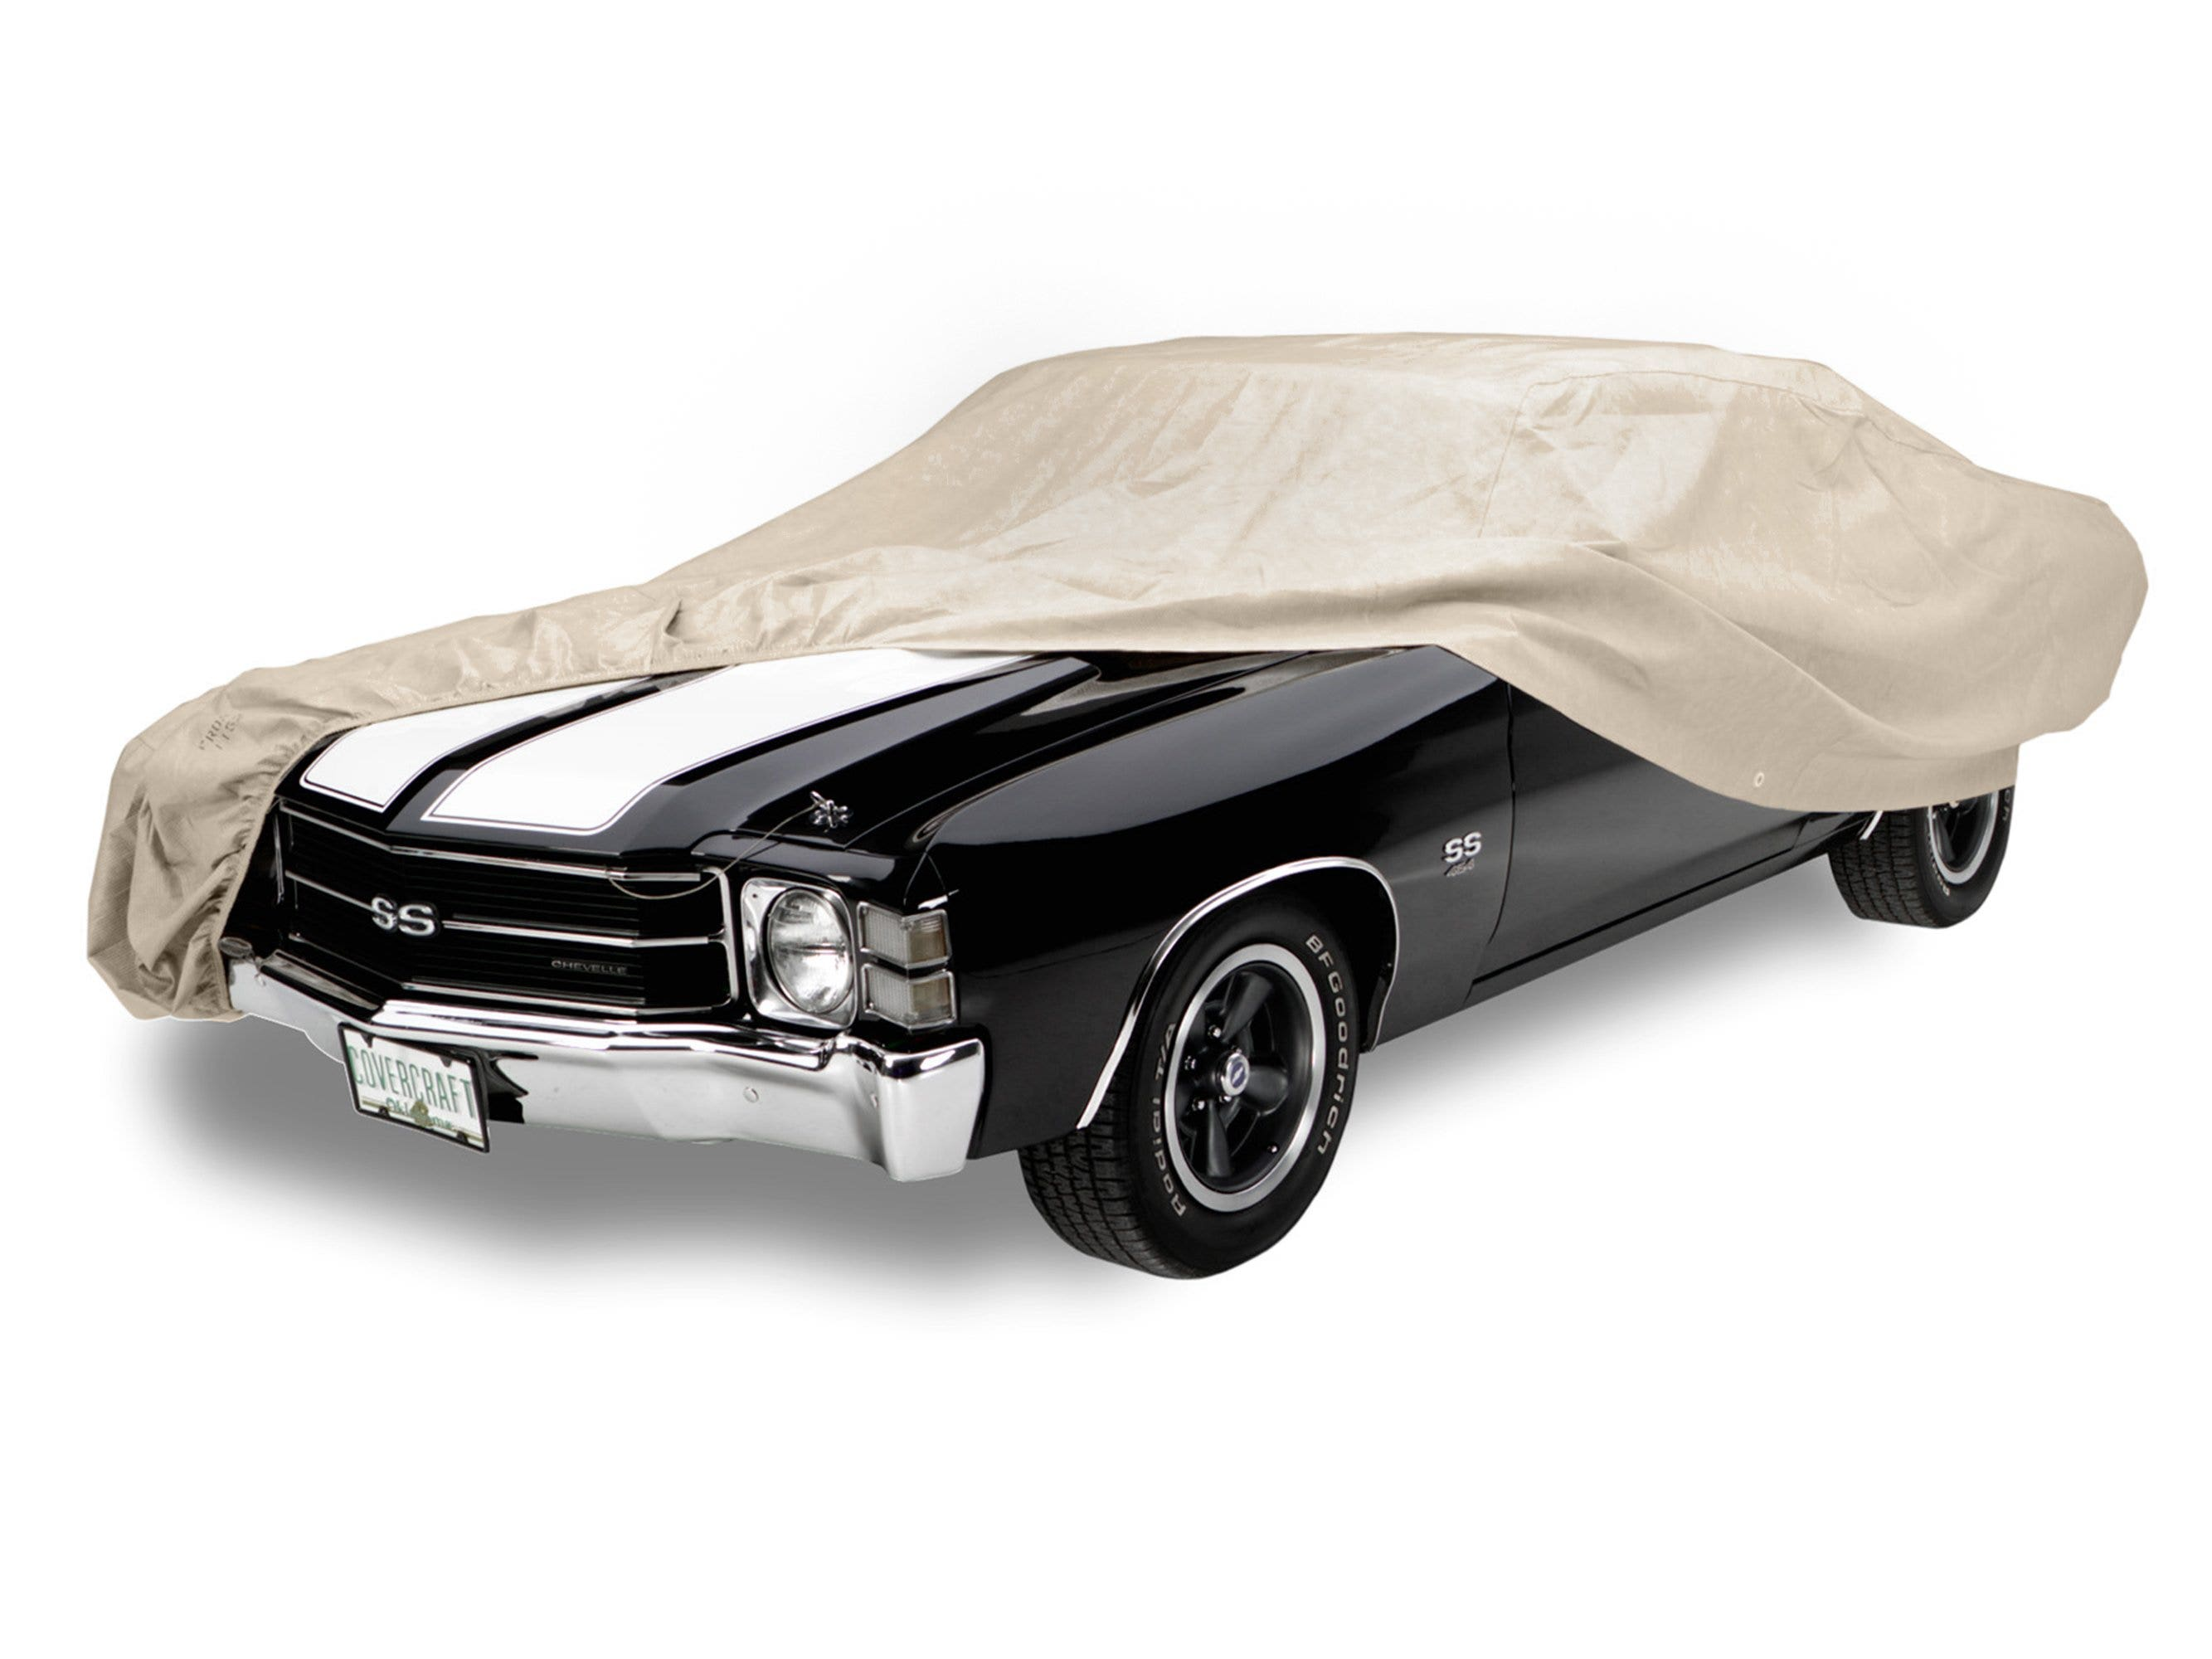 Covercraft Dustop Custom Car Cover